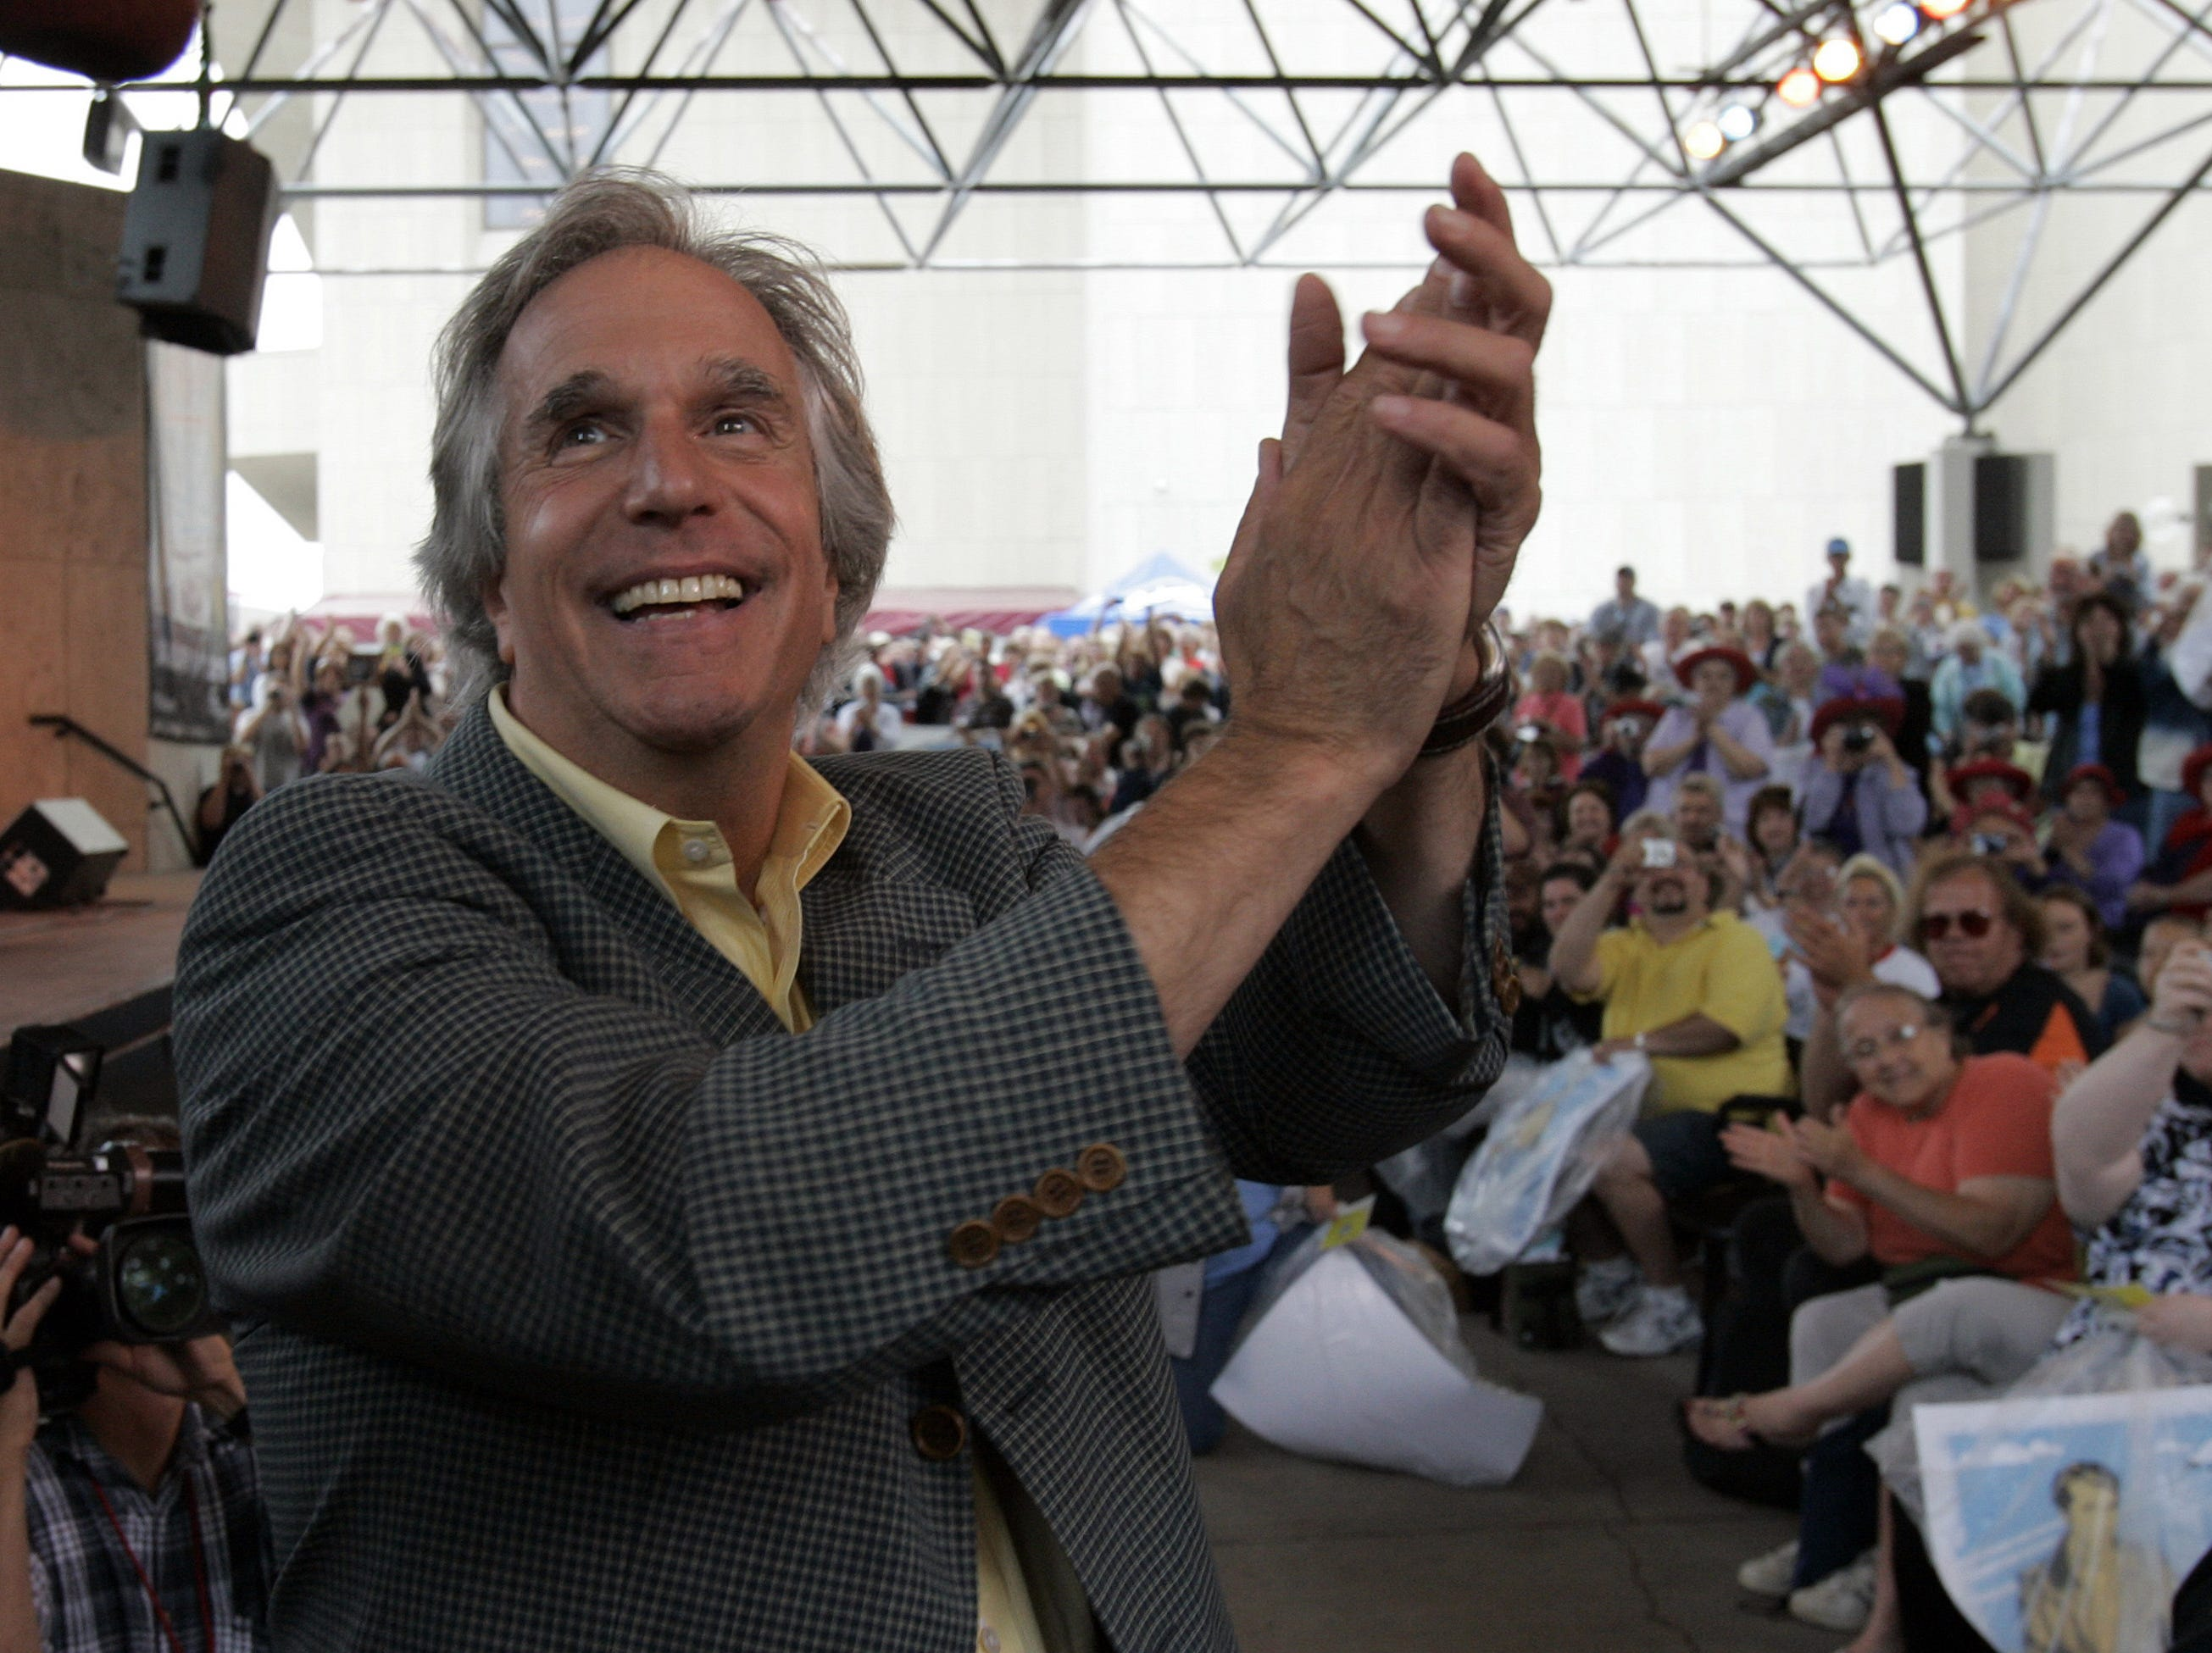 """Henry Winkler,  known as """"The Fonz"""" from the Milwaukee-based television show """"Happy Days,"""" welcomes the public at the Marcus Performing Arts Center for the dedication of """"The Bronz Fonz,"""" a statue commemorating him and the show."""